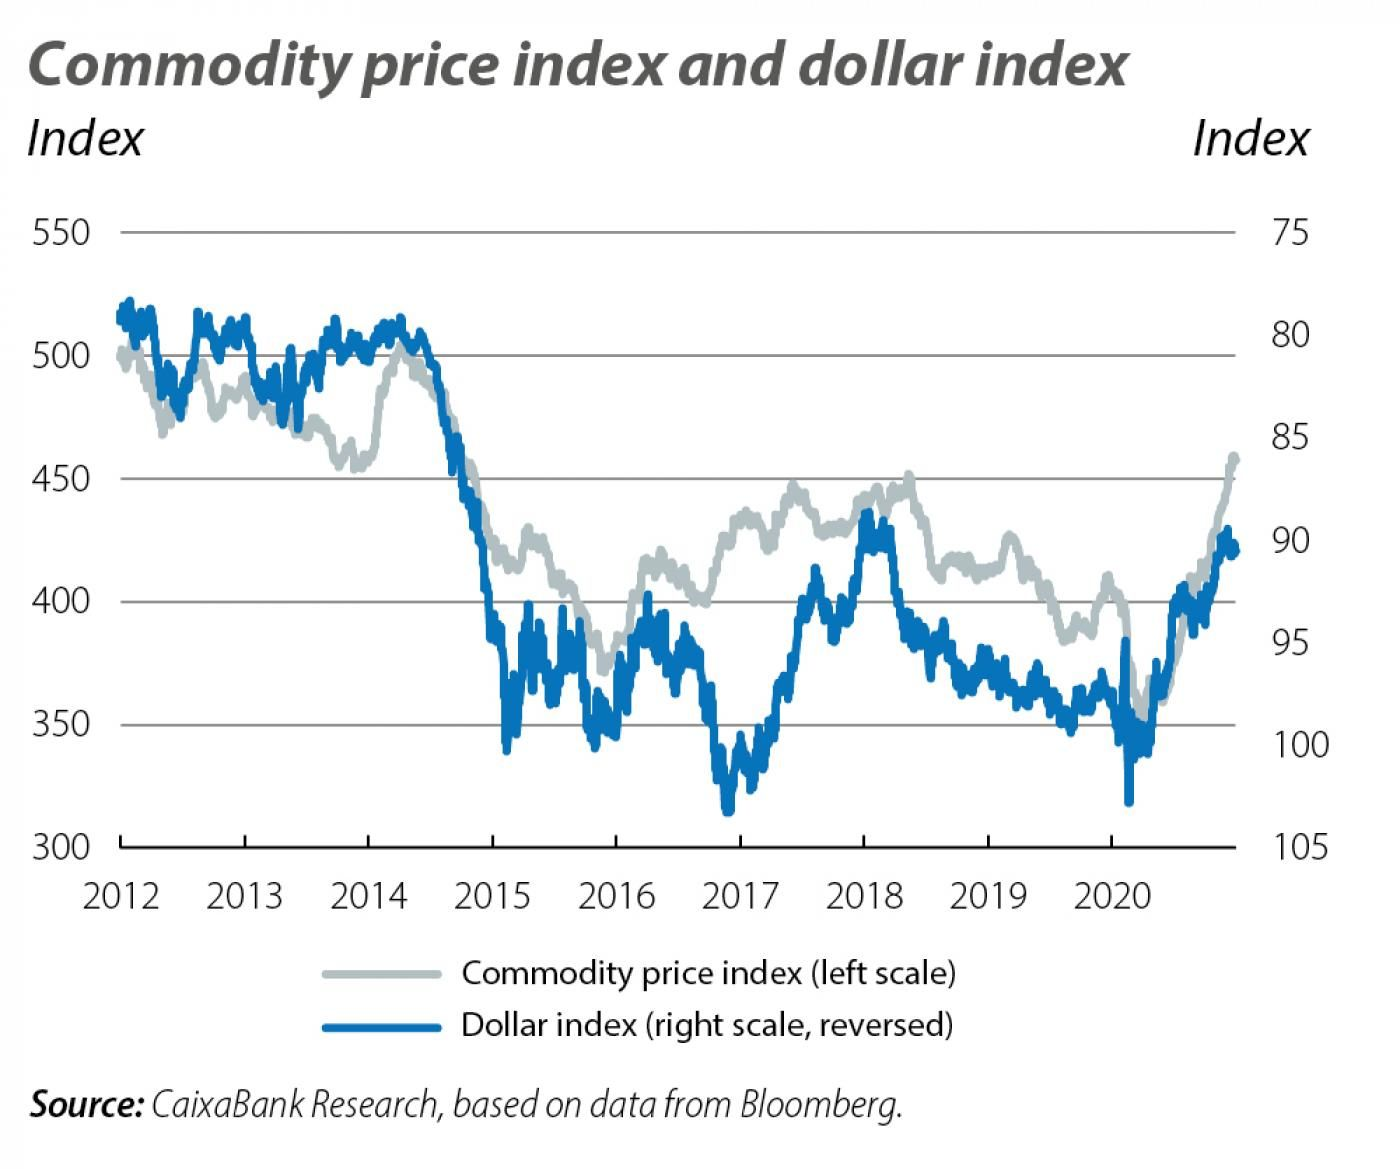 Commodity pr ice index and dollar index